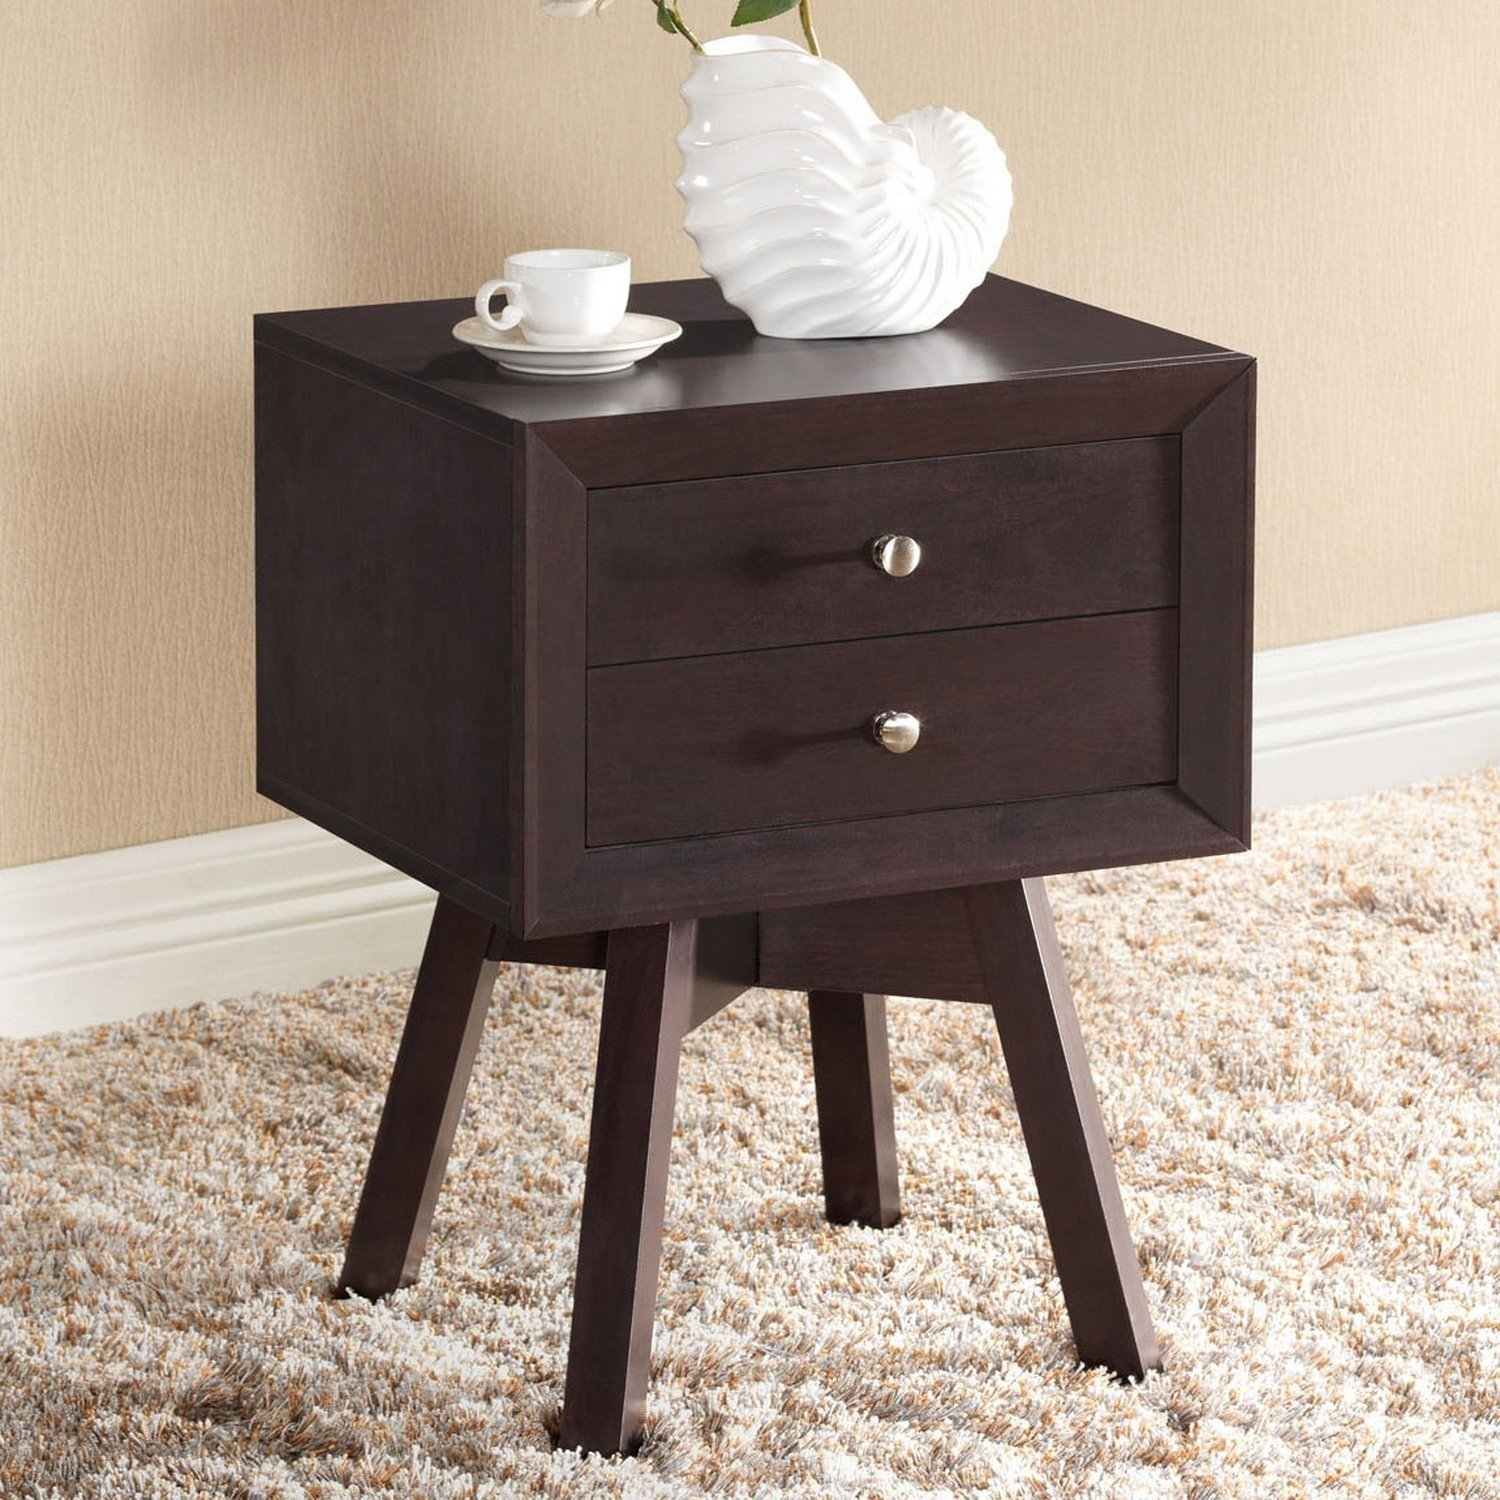 accent desk find line treasure trove end table get quotations indoor multi function study computer bedroom living room modern style modular sofas for small spaces round tablecloth